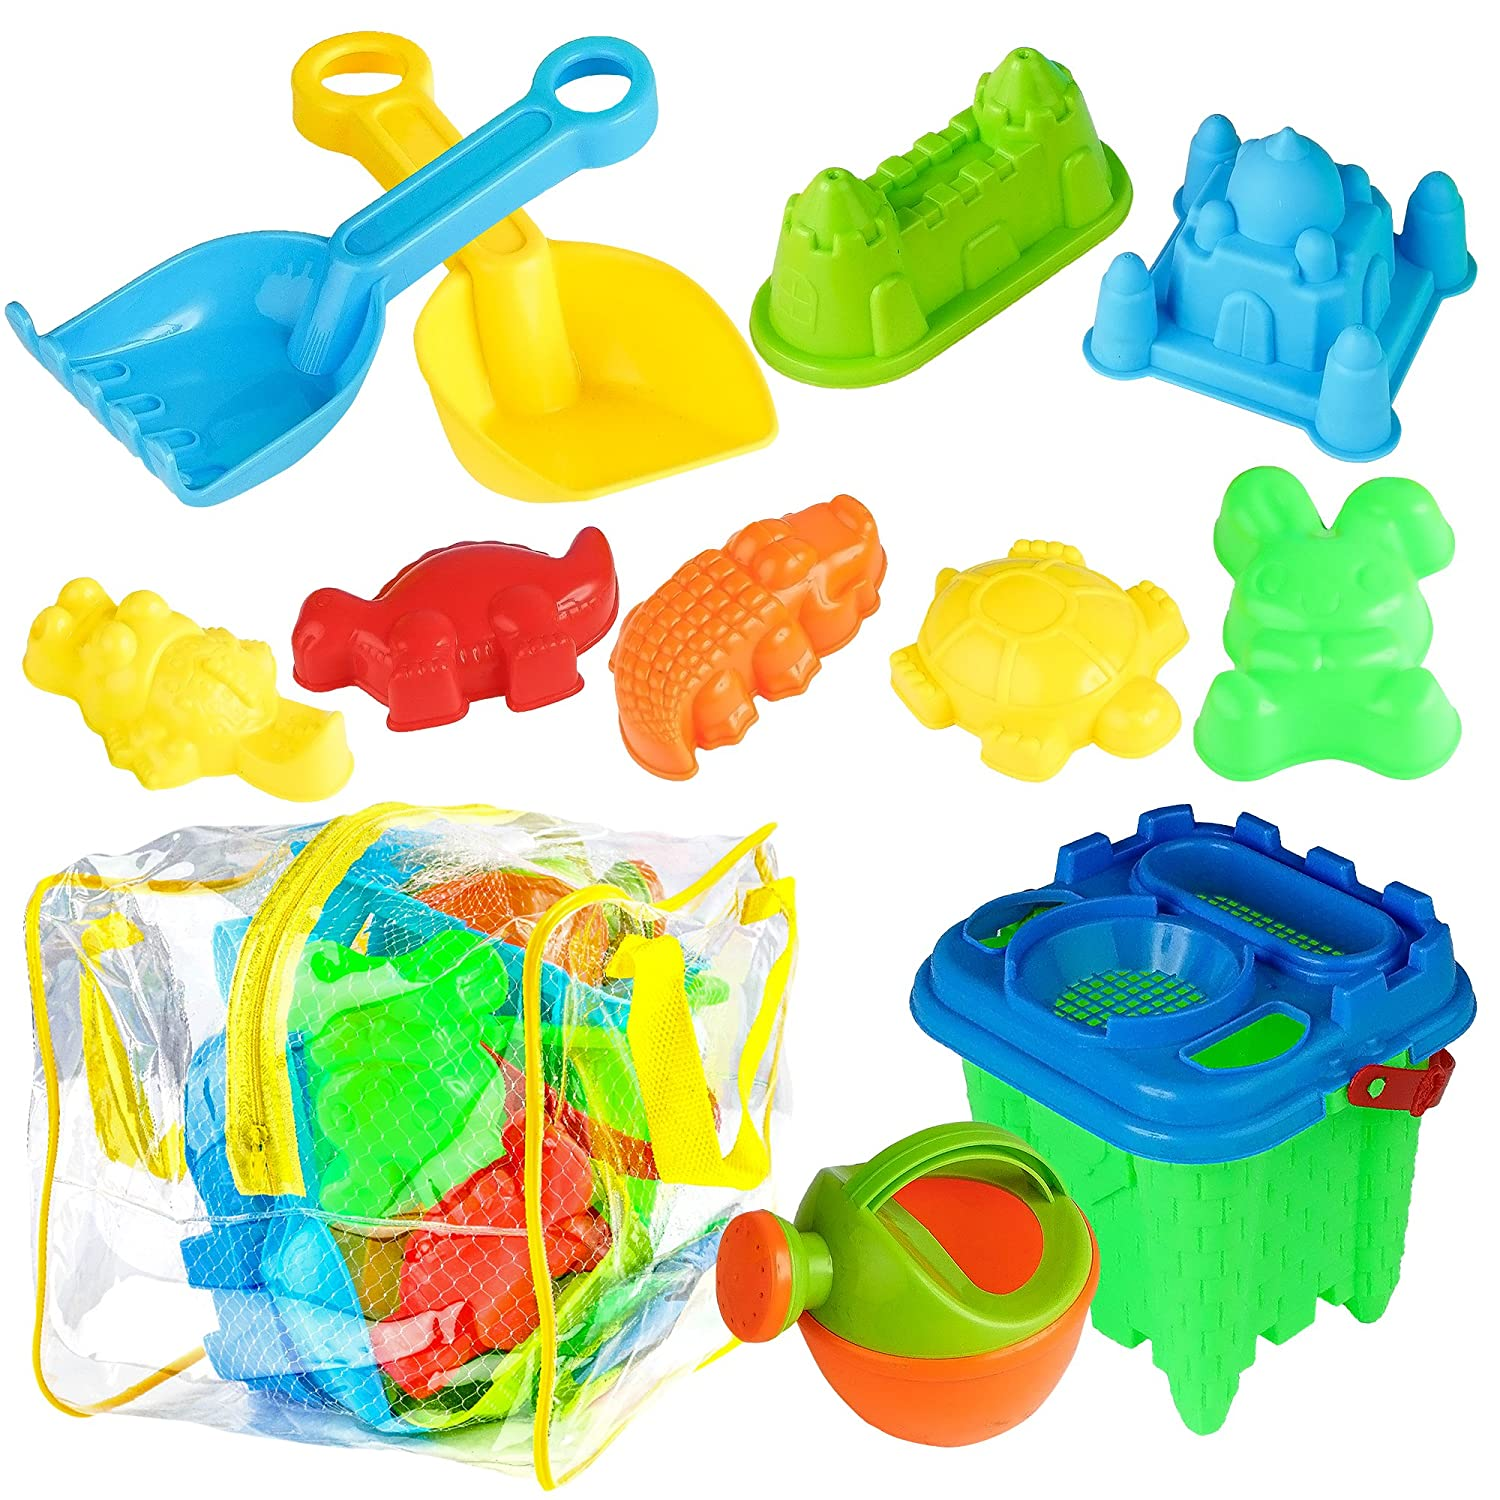 13 Pack Beach Toy Set - Ideal for a Day at The Beach - Includes Mesh Bag & Strong PVC Bag Bramble